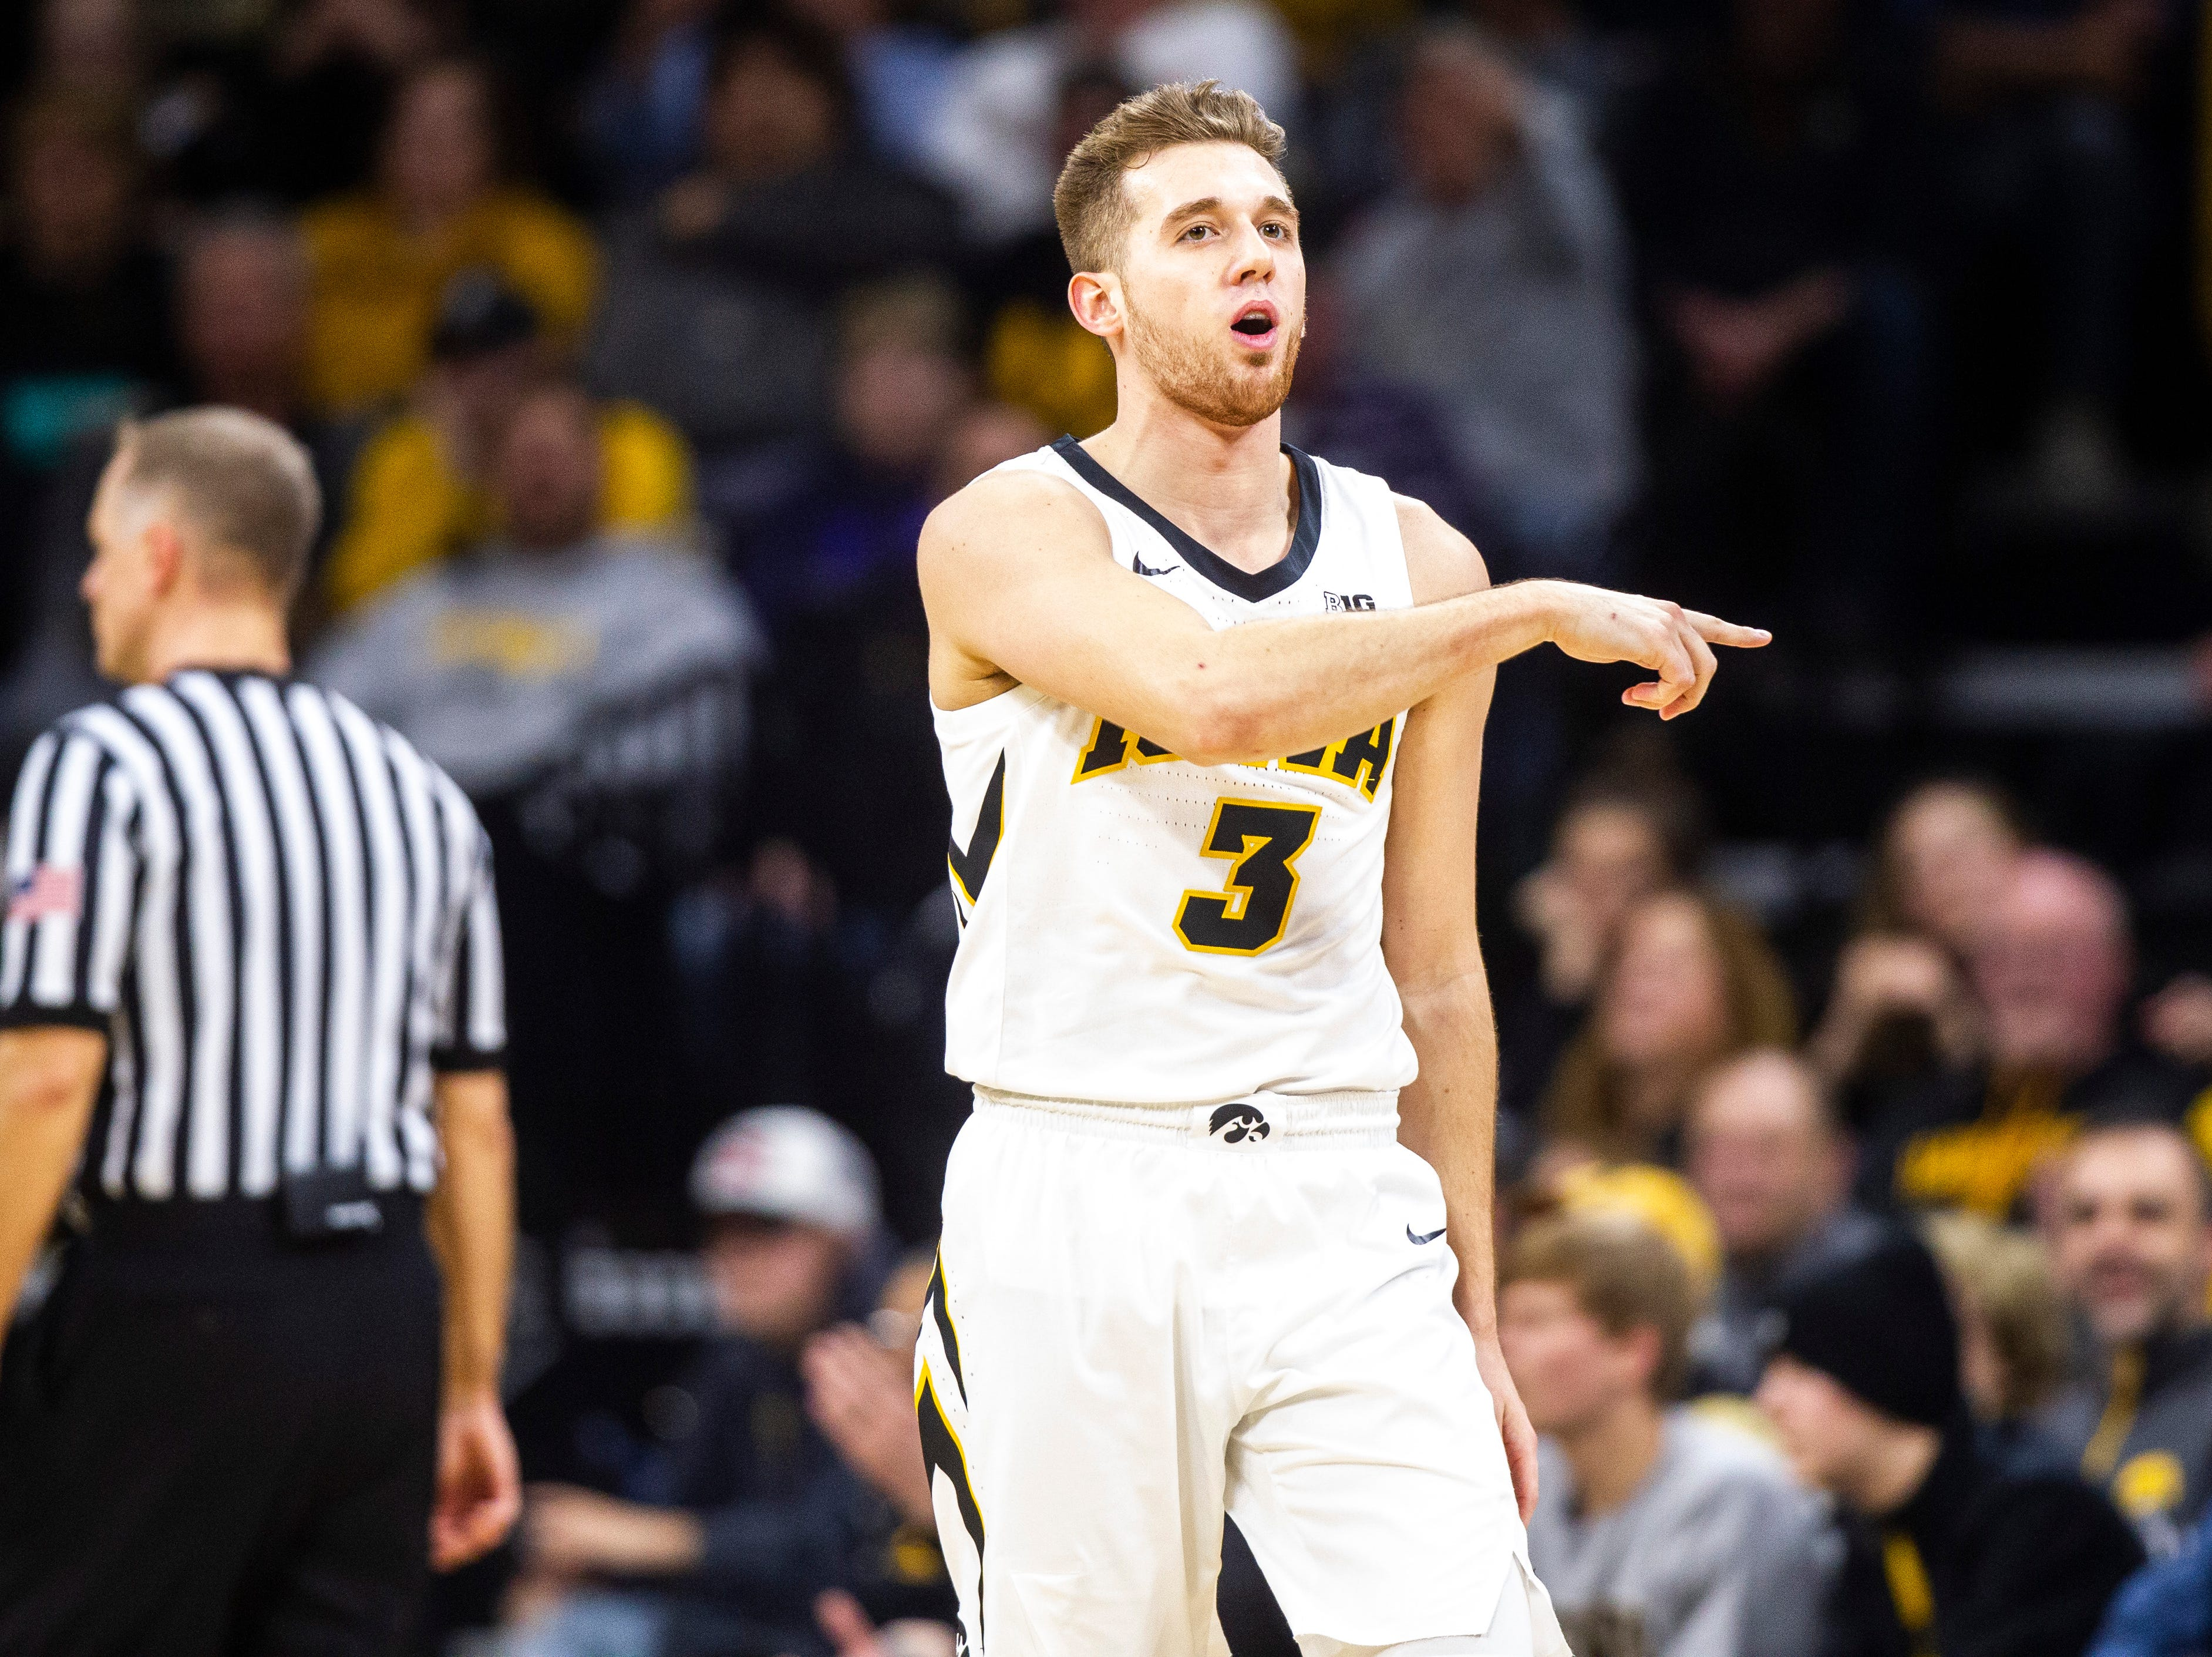 Iowa guard Jordan Bohannon (3) reacts after getting called for a foul during a NCAA Big Ten Conference men's basketball game on Tuesday, Feb. 19, 2019 at Carver-Hawkeye Arena in Iowa City, Iowa.